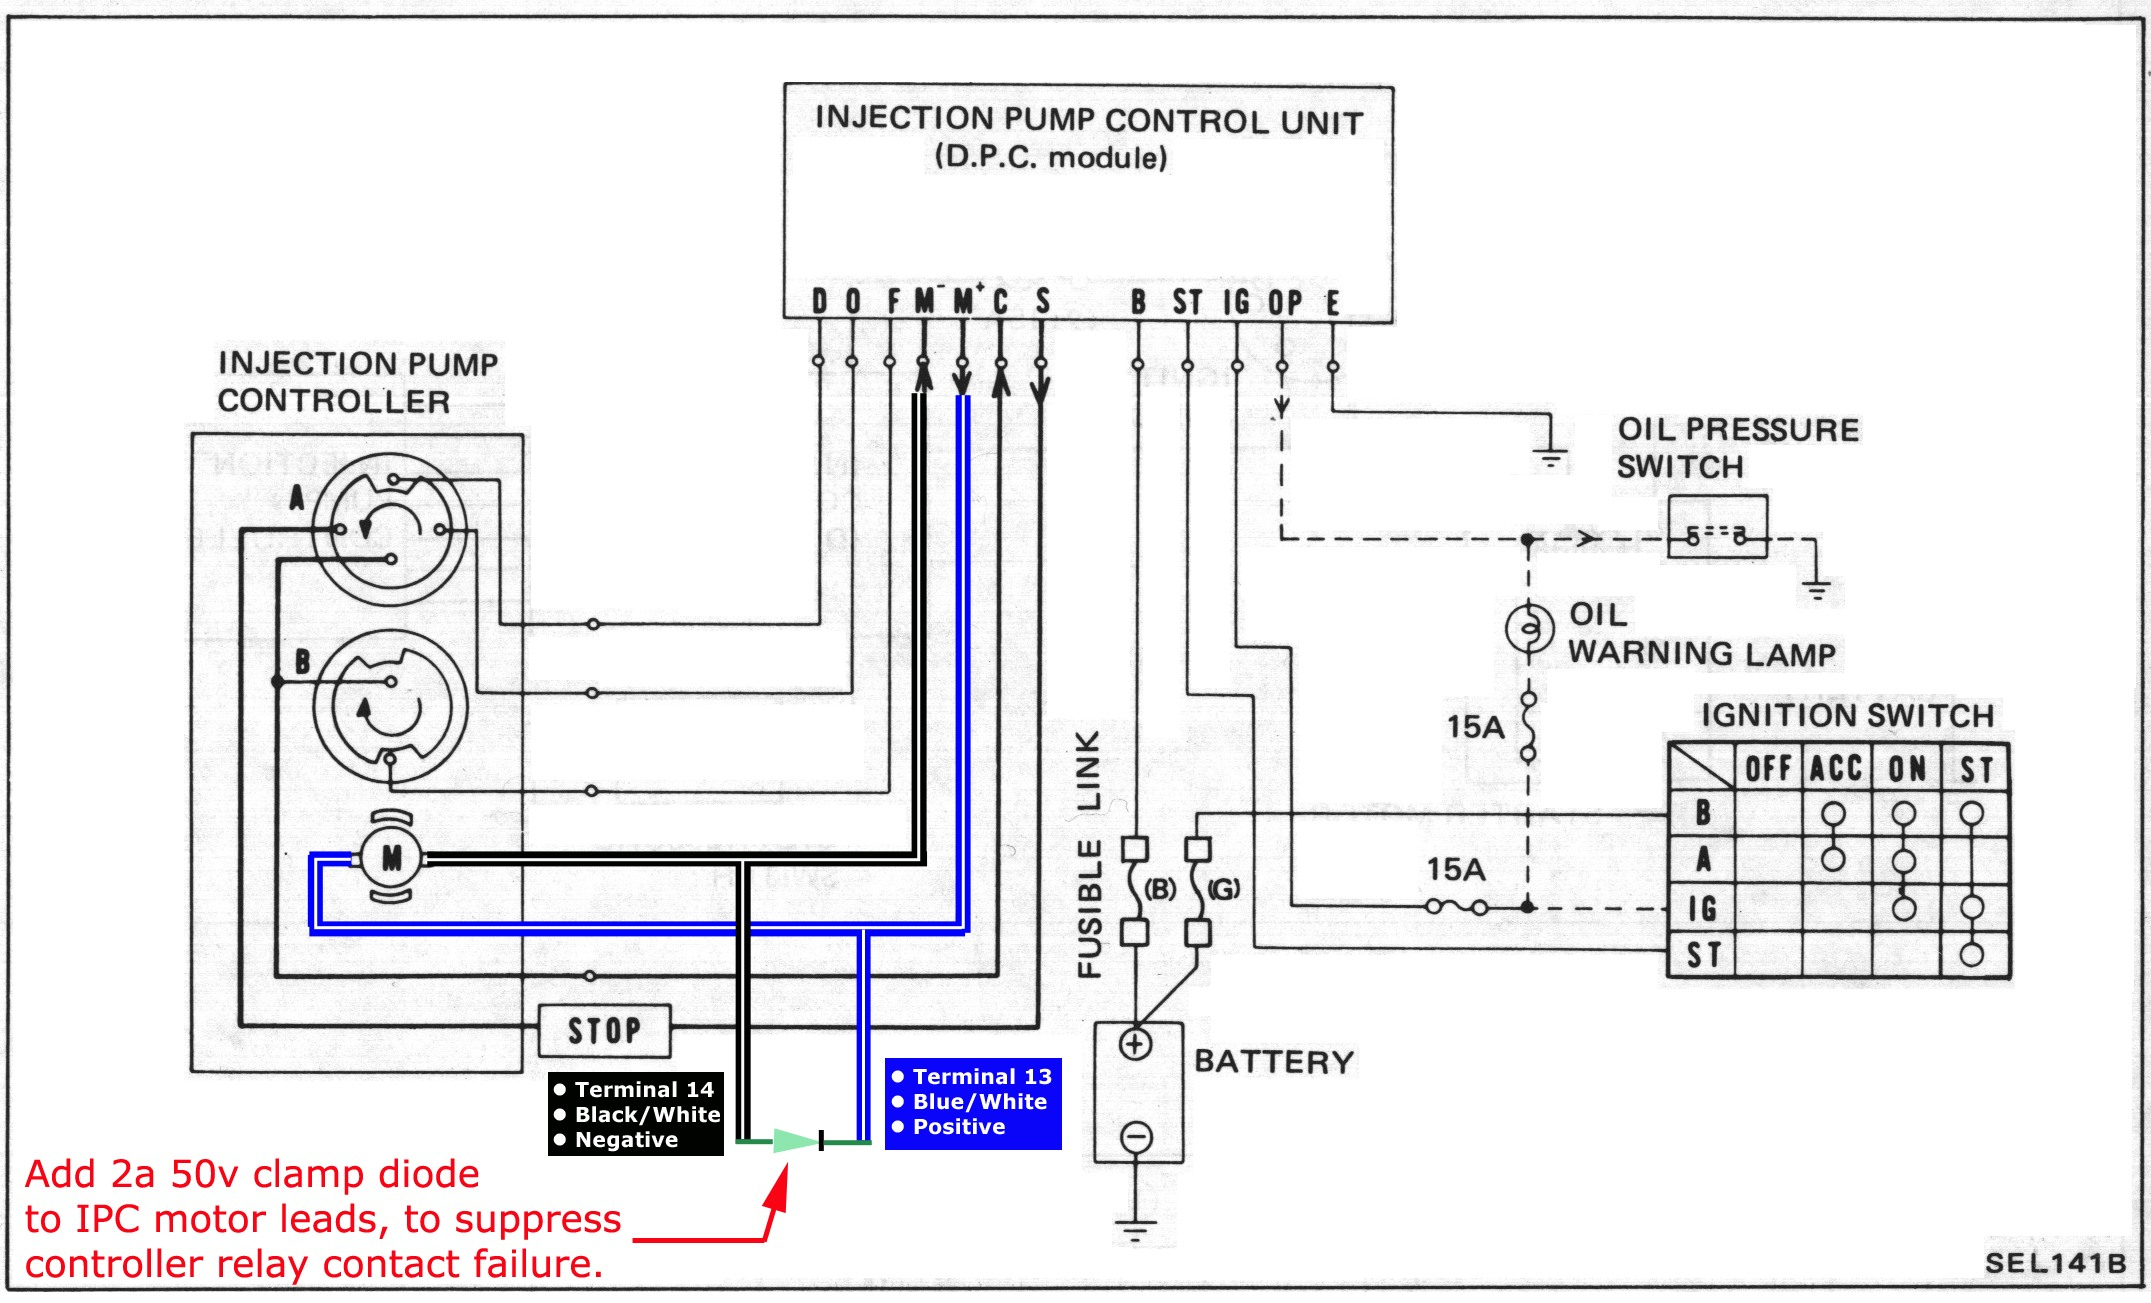 Maxima Oil Pressure Switch Wiring Harness | Wiring Diagram - Oil Pressure Switch Wiring Diagram